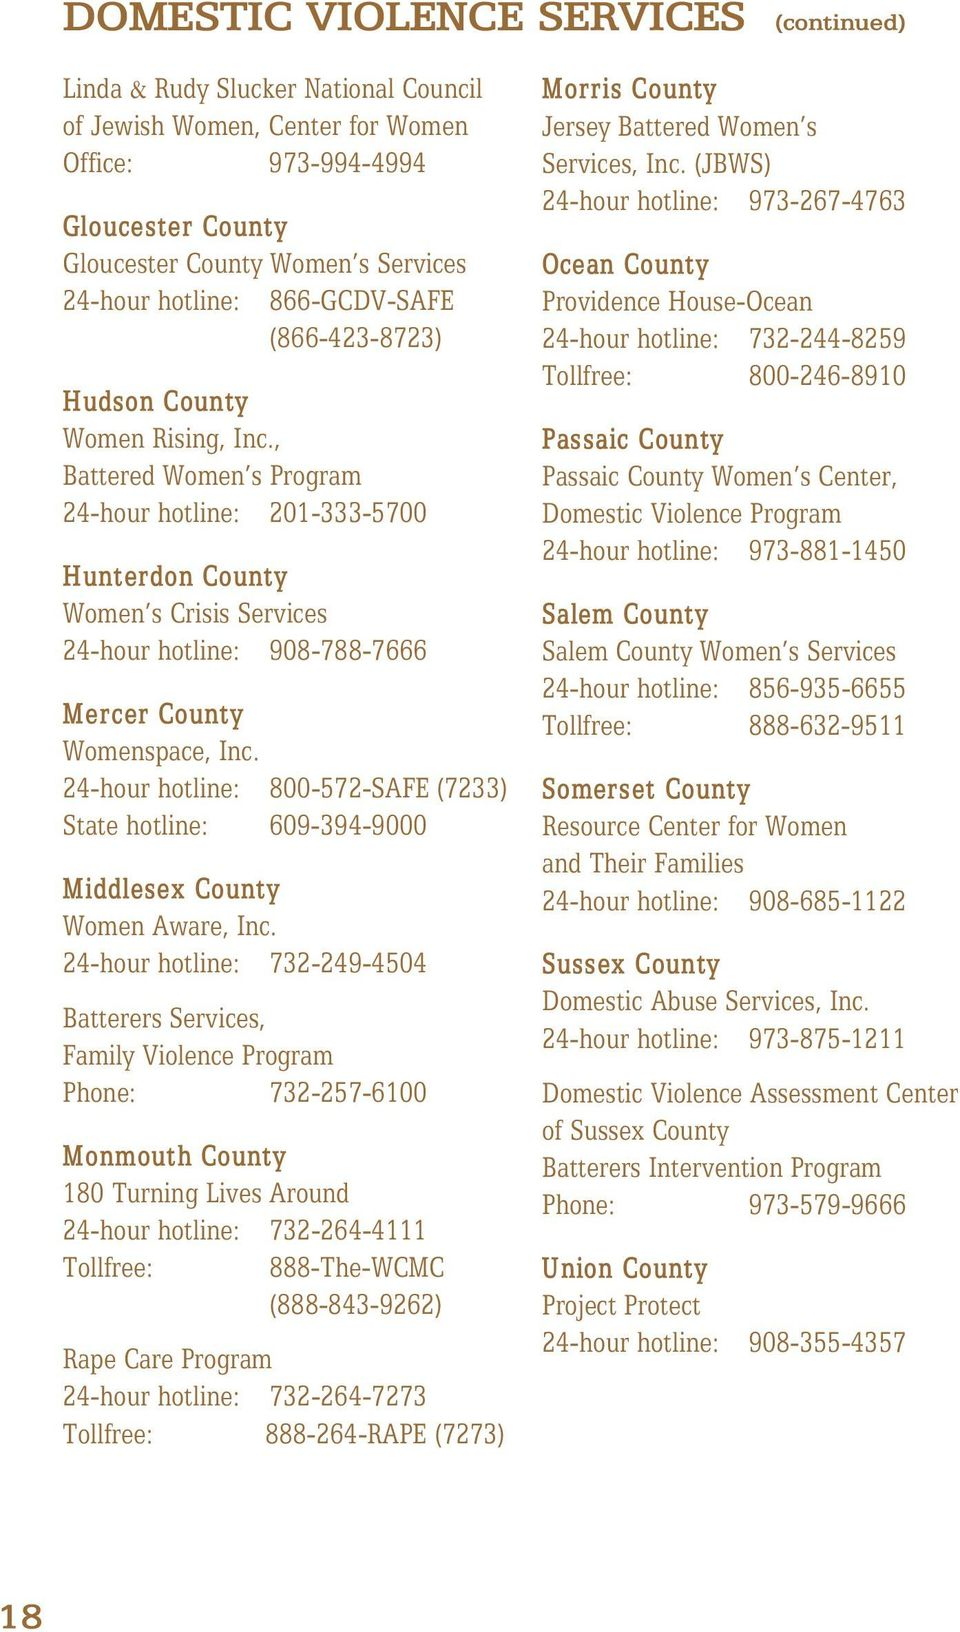 , Battered Women s Program 24-hour hotline: 201-333-5700 Hunterdon County Women s Crisis Services 24-hour hotline: 908-788-7666 Mercer County Womenspace, Inc.